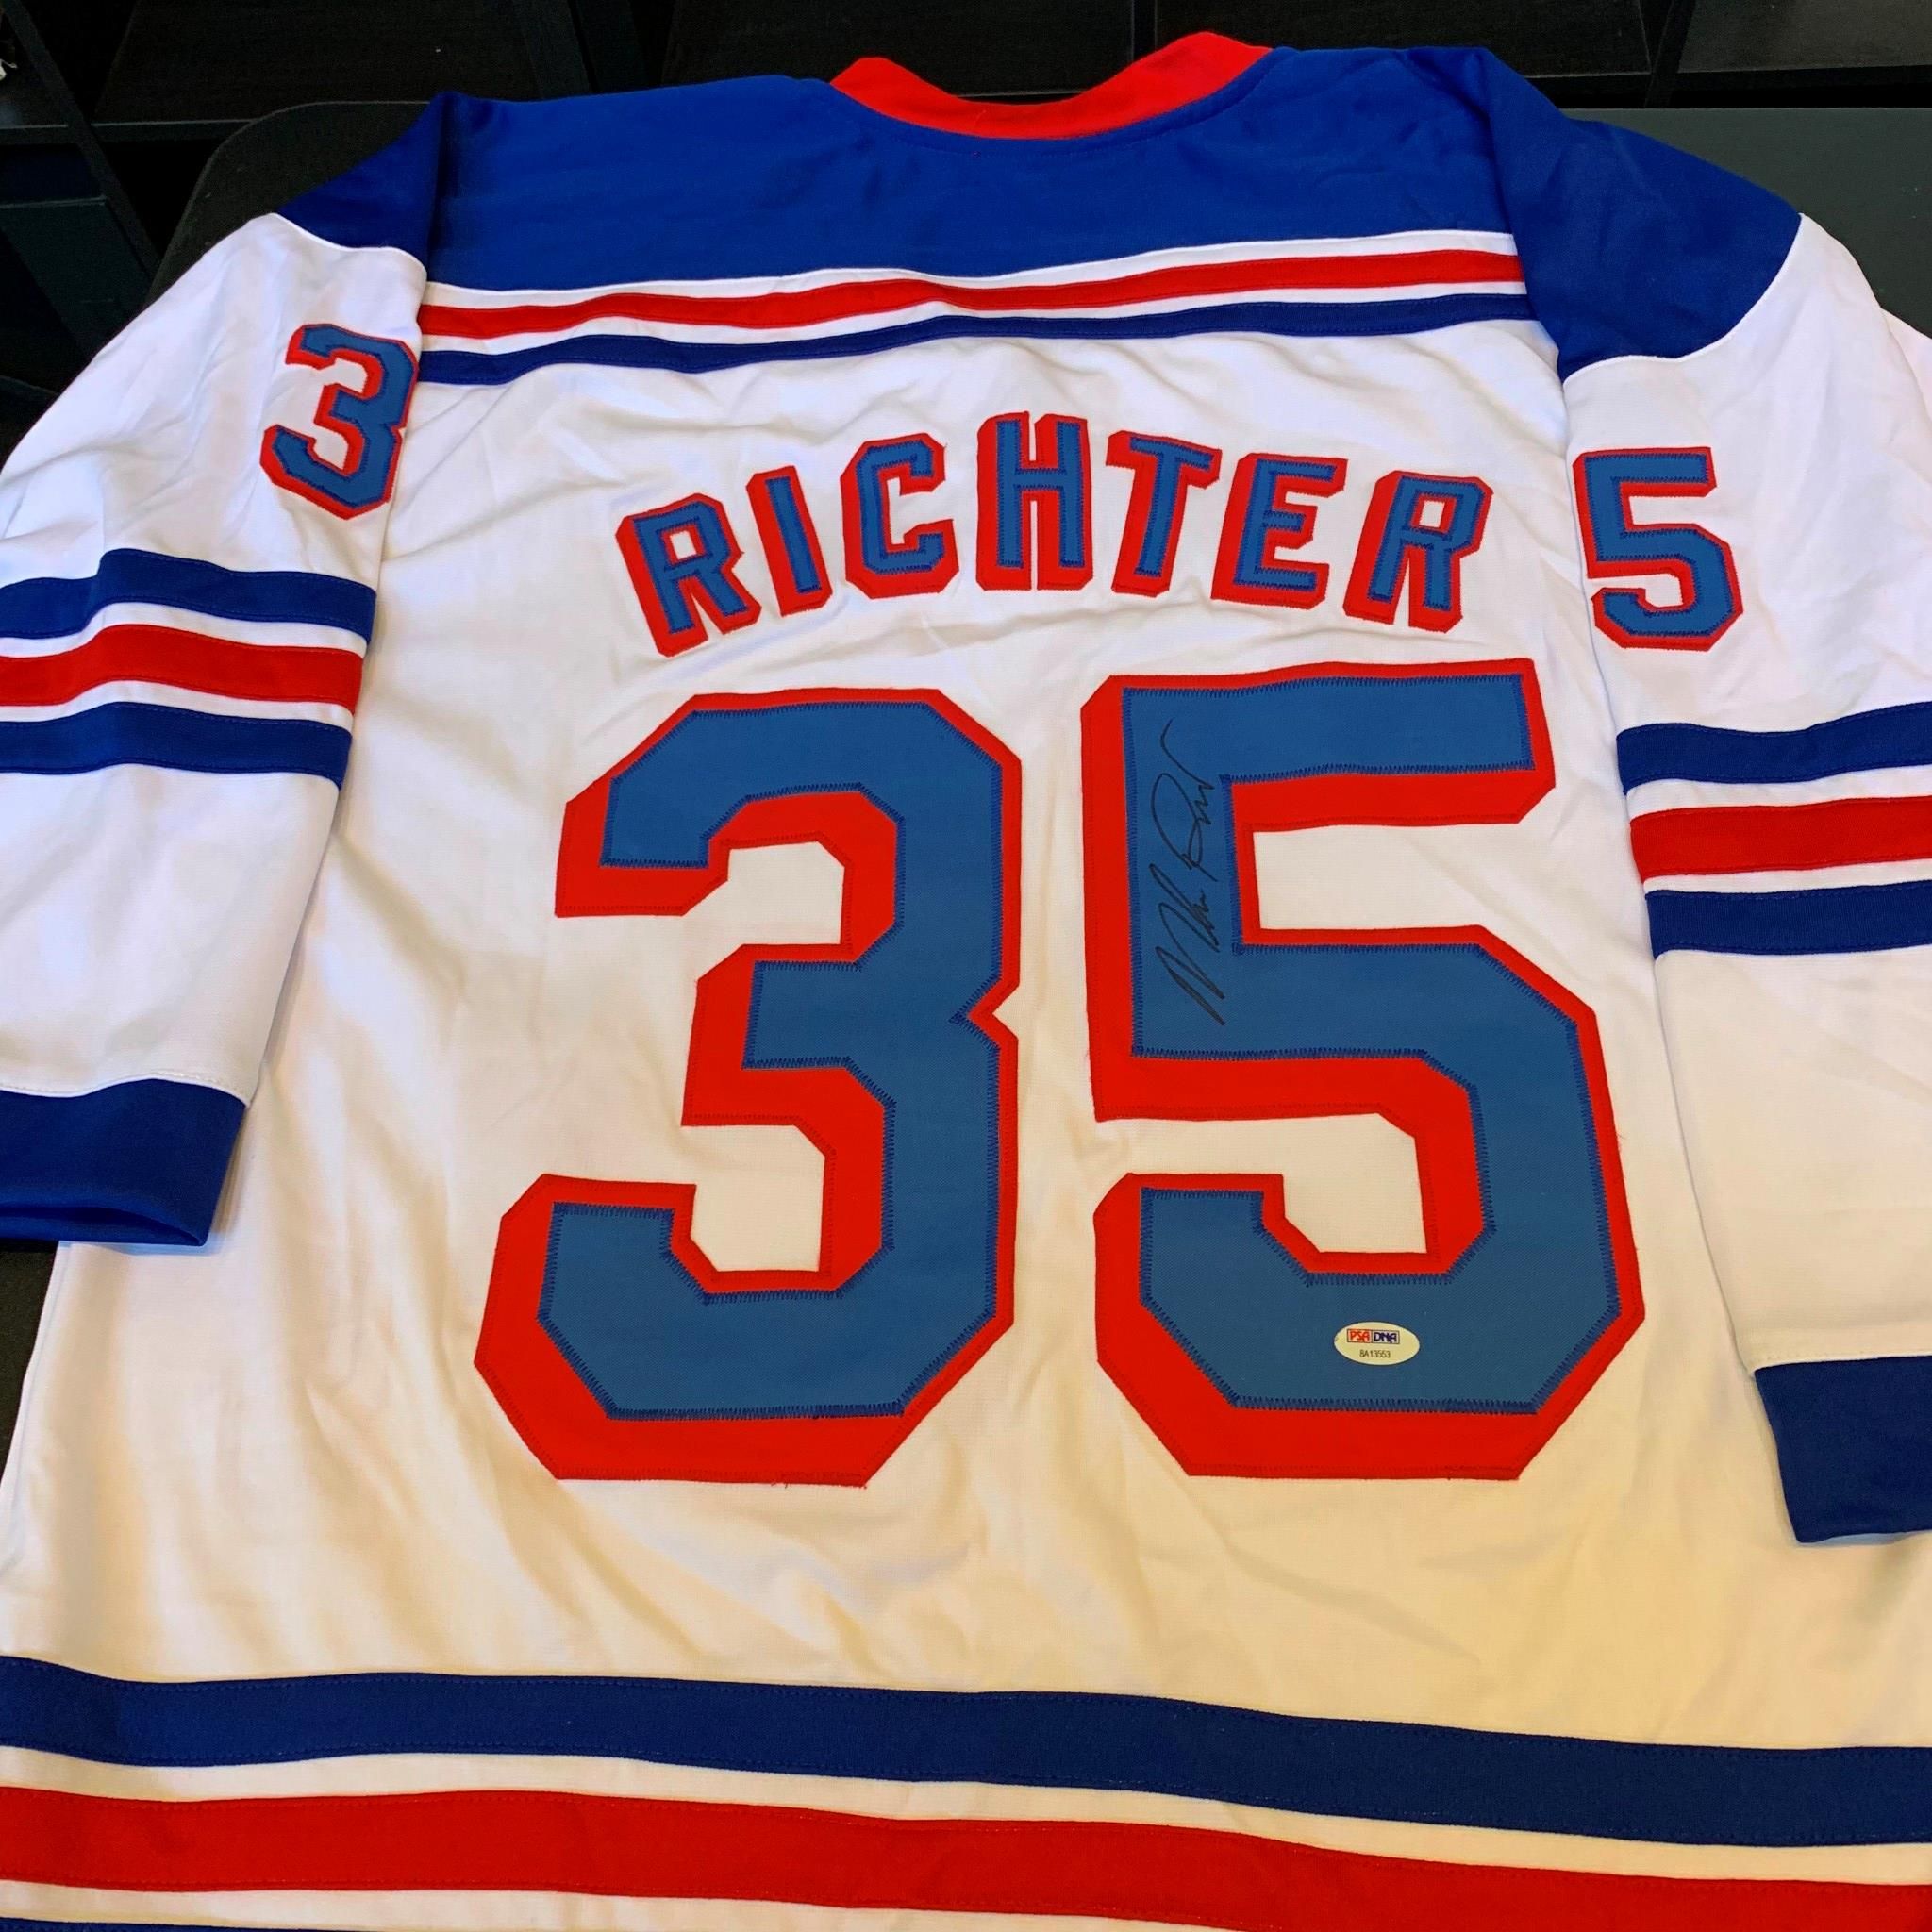 new styles a689f b7ee8 Details about Mike Richter Signed New York Rangers Hockey Jersey PSA DNA  Sticker